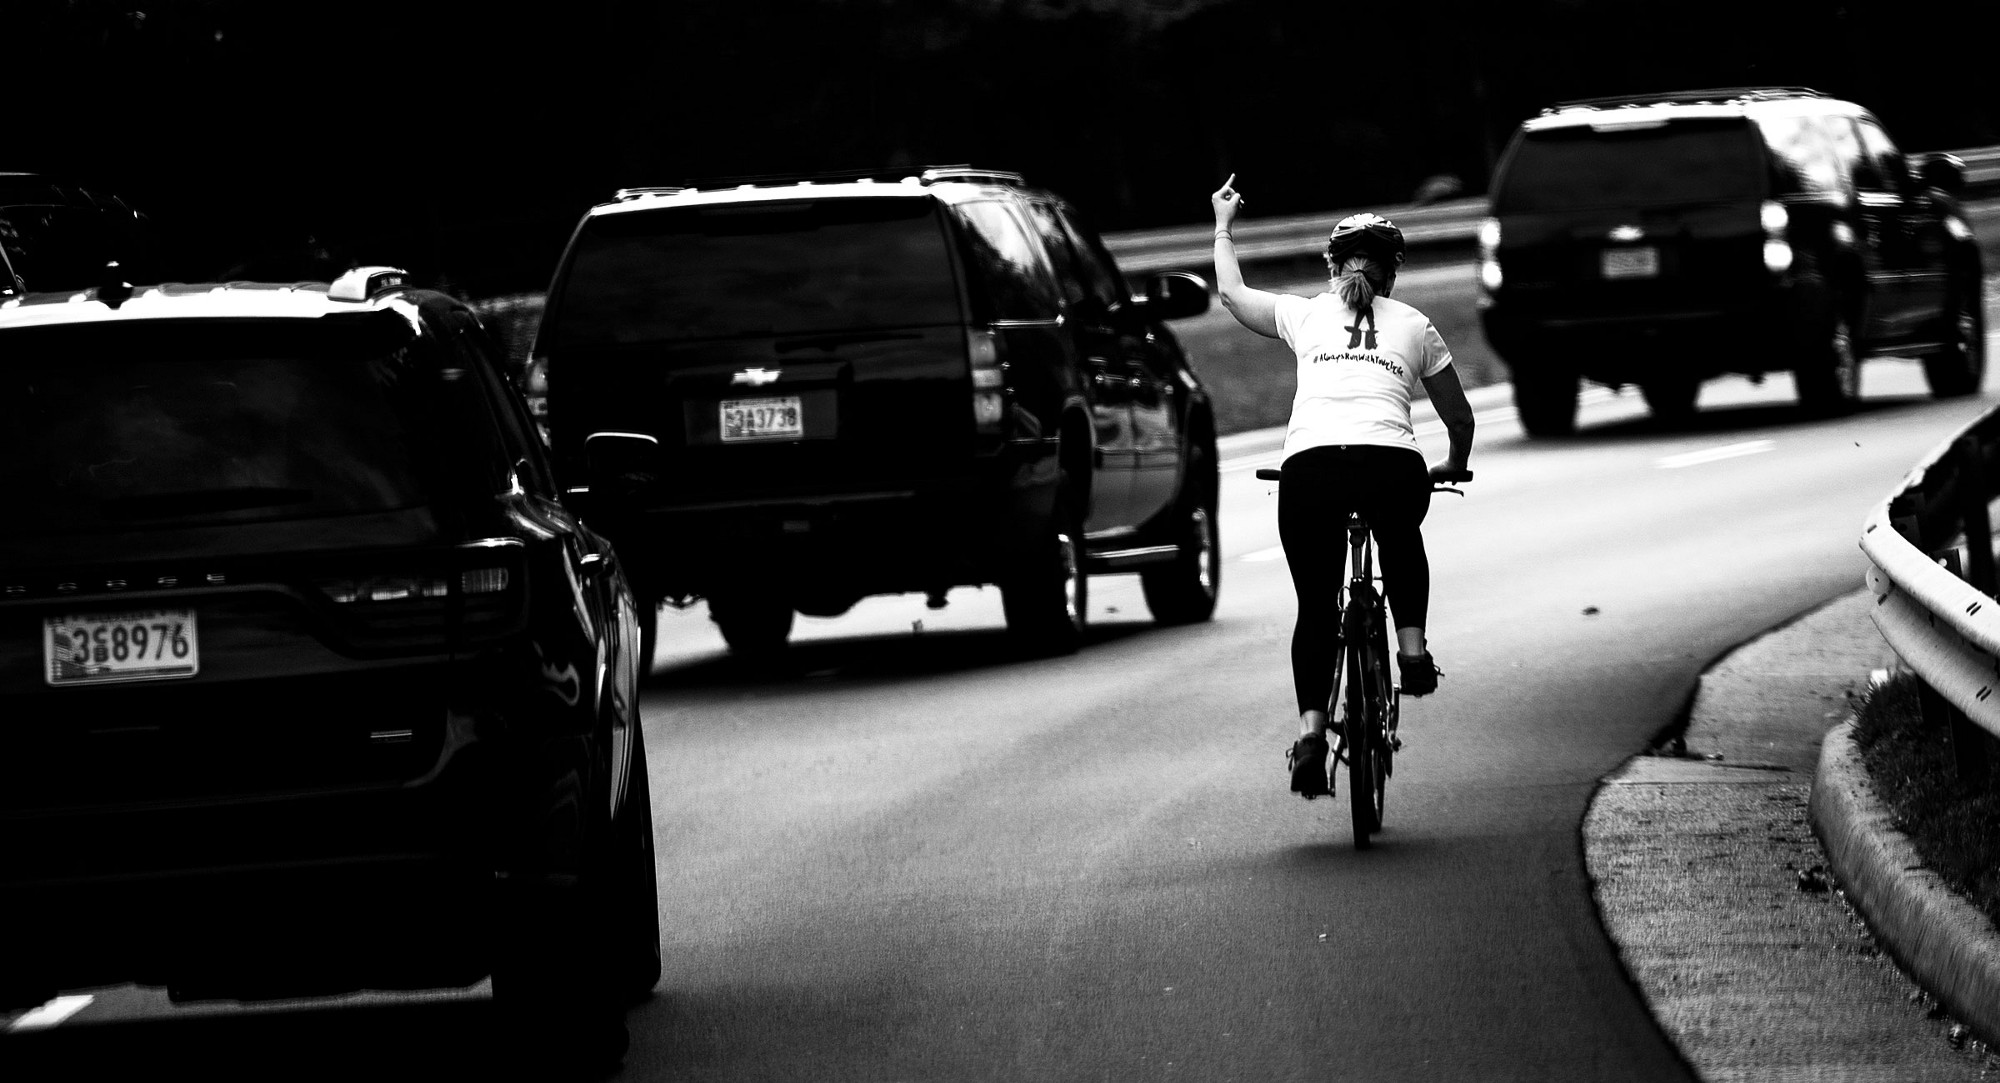 Cyclist who 'flipped off' Trump's motorcade fired by employer